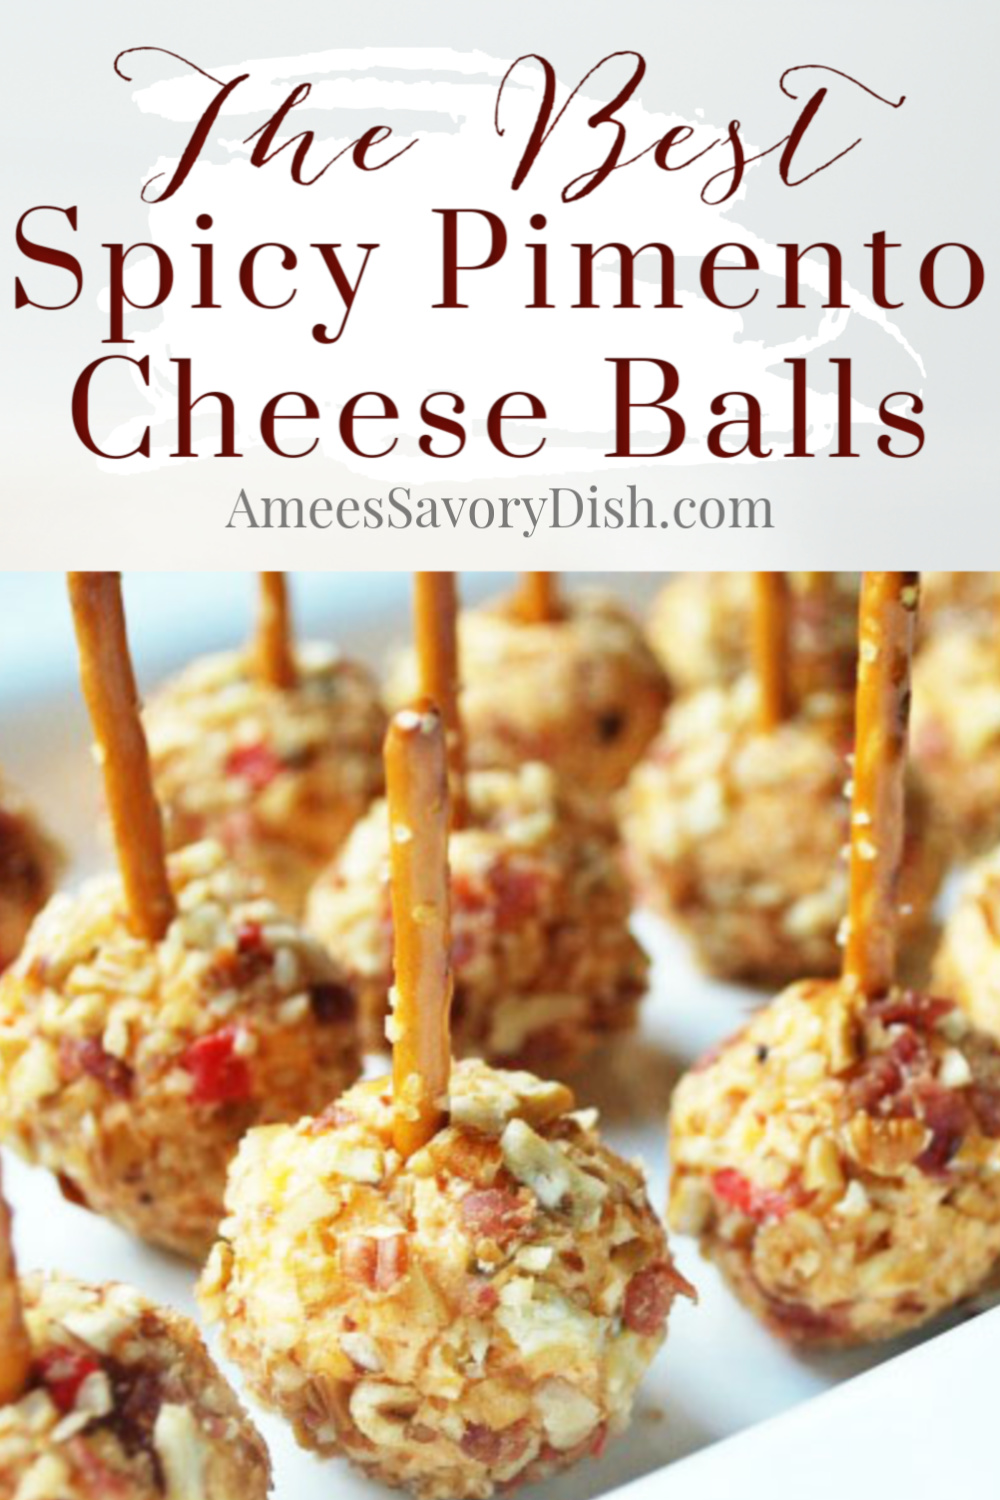 A recipe for pimento cheese balls rolled in toasted nuts and served on a pretzel stick for a deliciously easy party appetizer. #cheeseballs #spicypimentocheese #pimentocheeseballs #appetizerrecipe via @Ameecooks